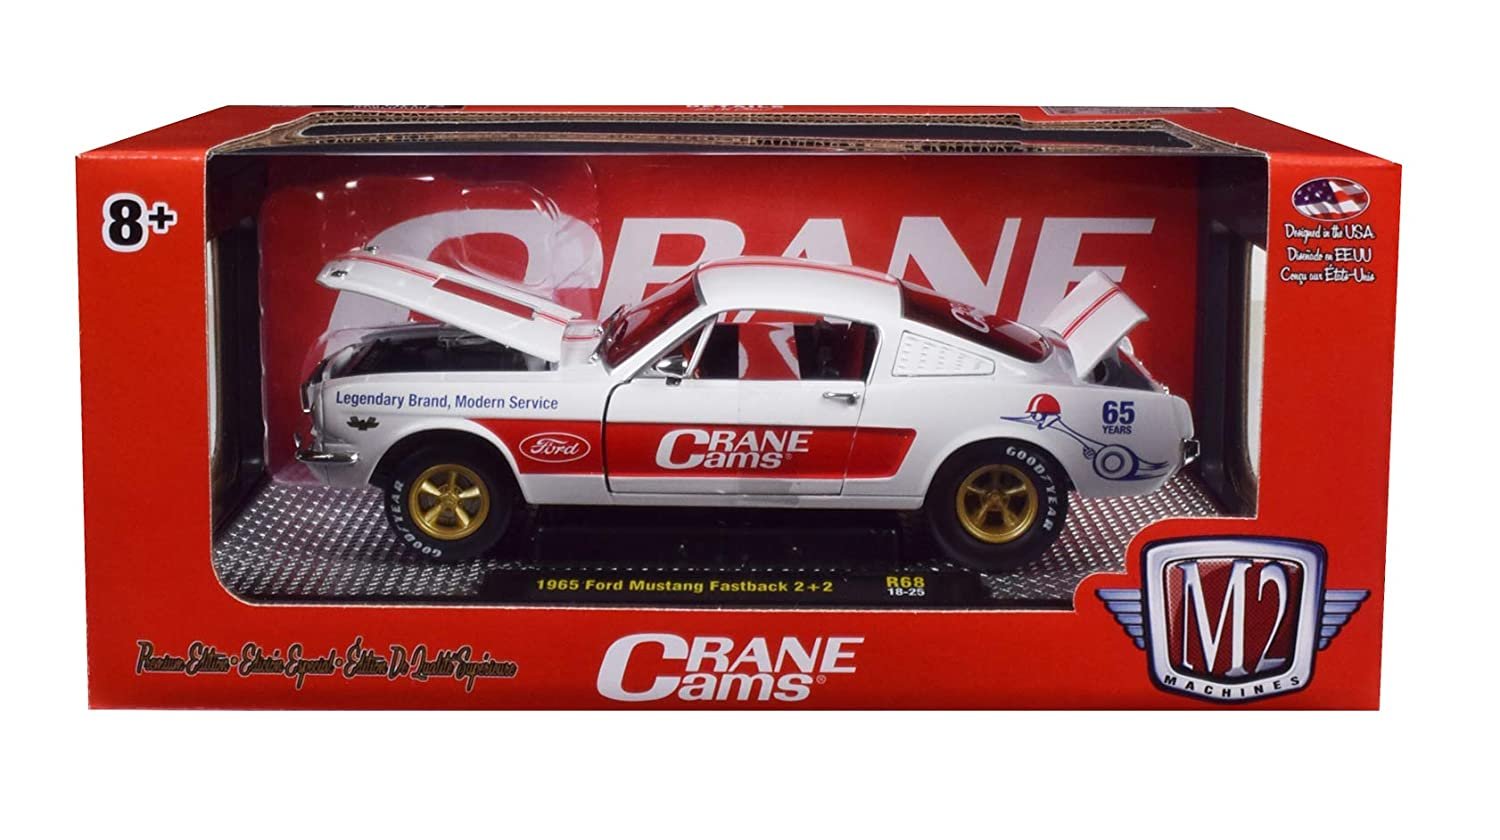 Amazon com 1965 ford mustang fastback 2 2crane cams white with red stripes limited edition to 5880 pieces worldwide 1 24 diecast model car by m2 machines